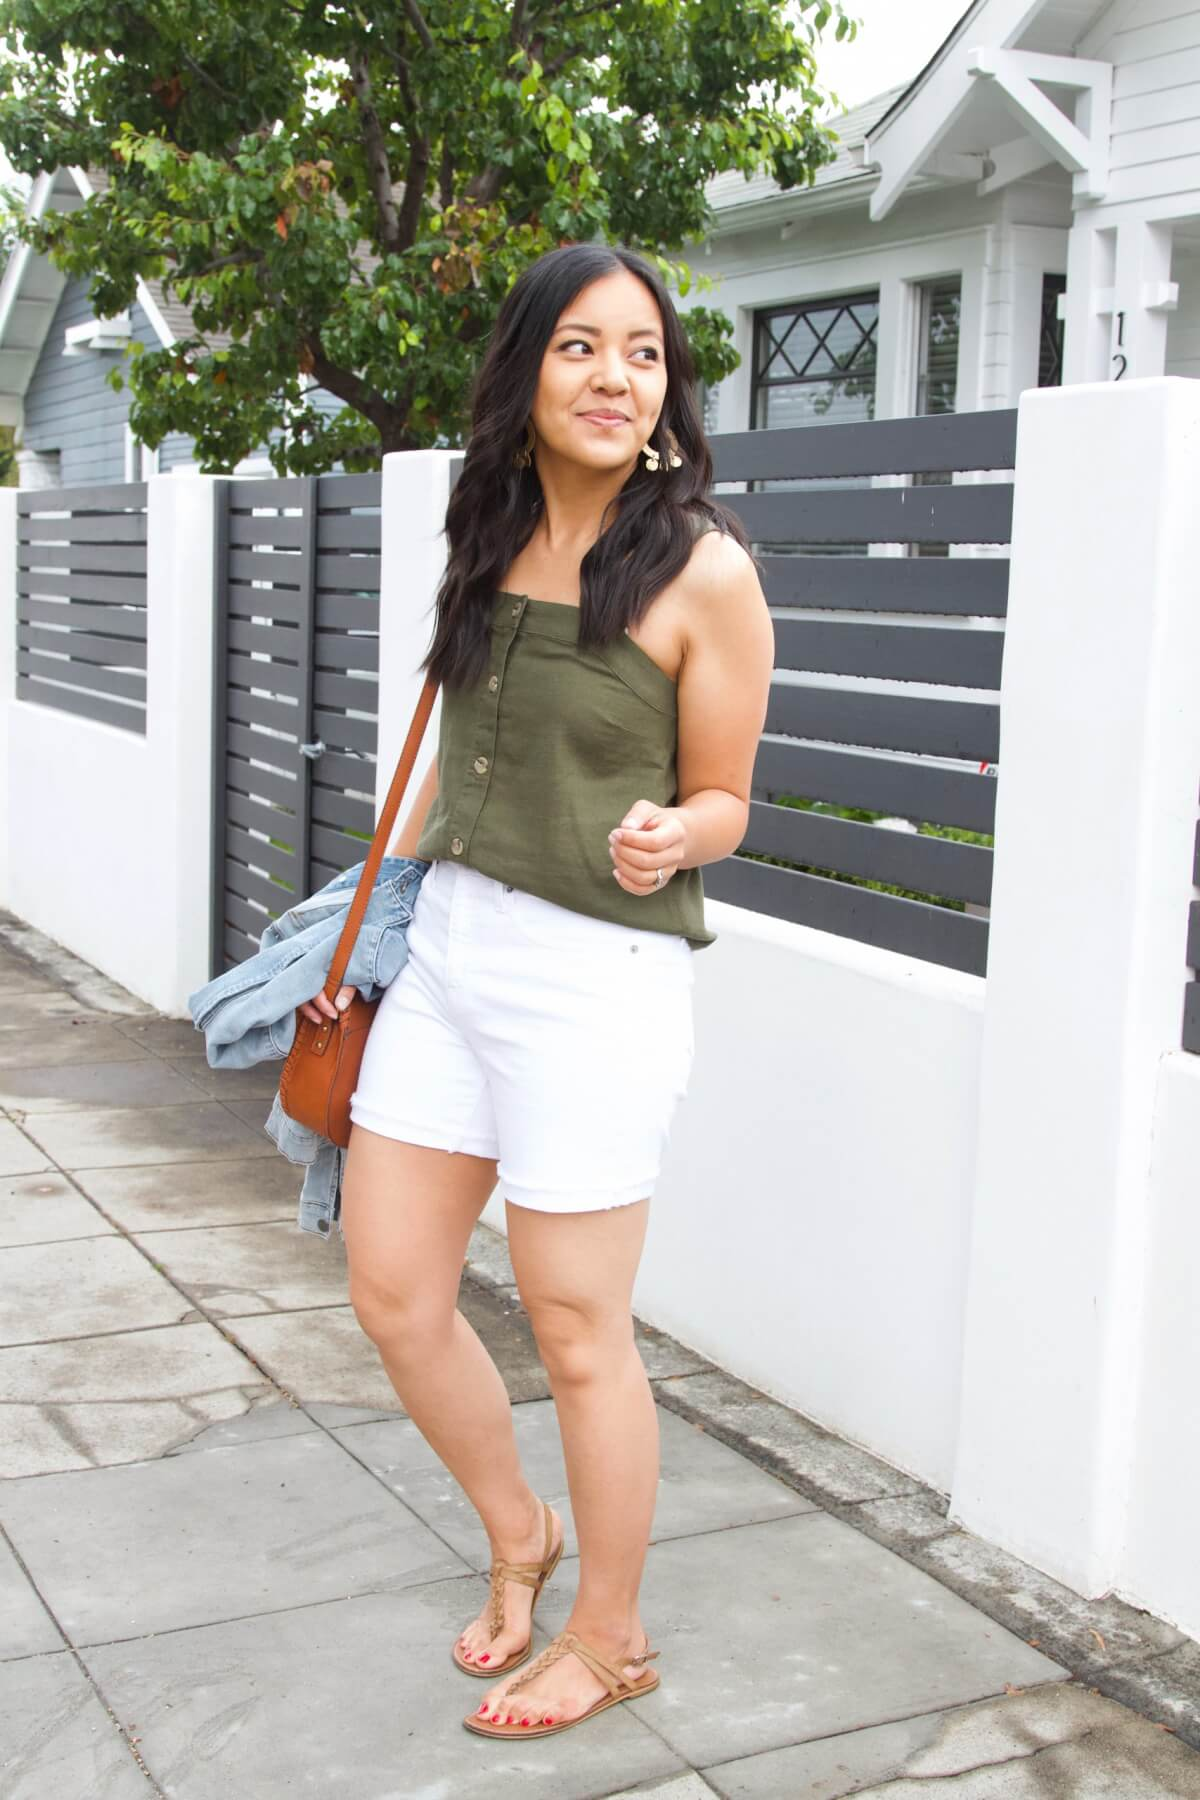 Dressy Casual Summer Outfit: olive button down linen sleeveless top + white shorts + denim jacket + tan t-strap sandals + gold dangly earrings + cognac crossbody bag